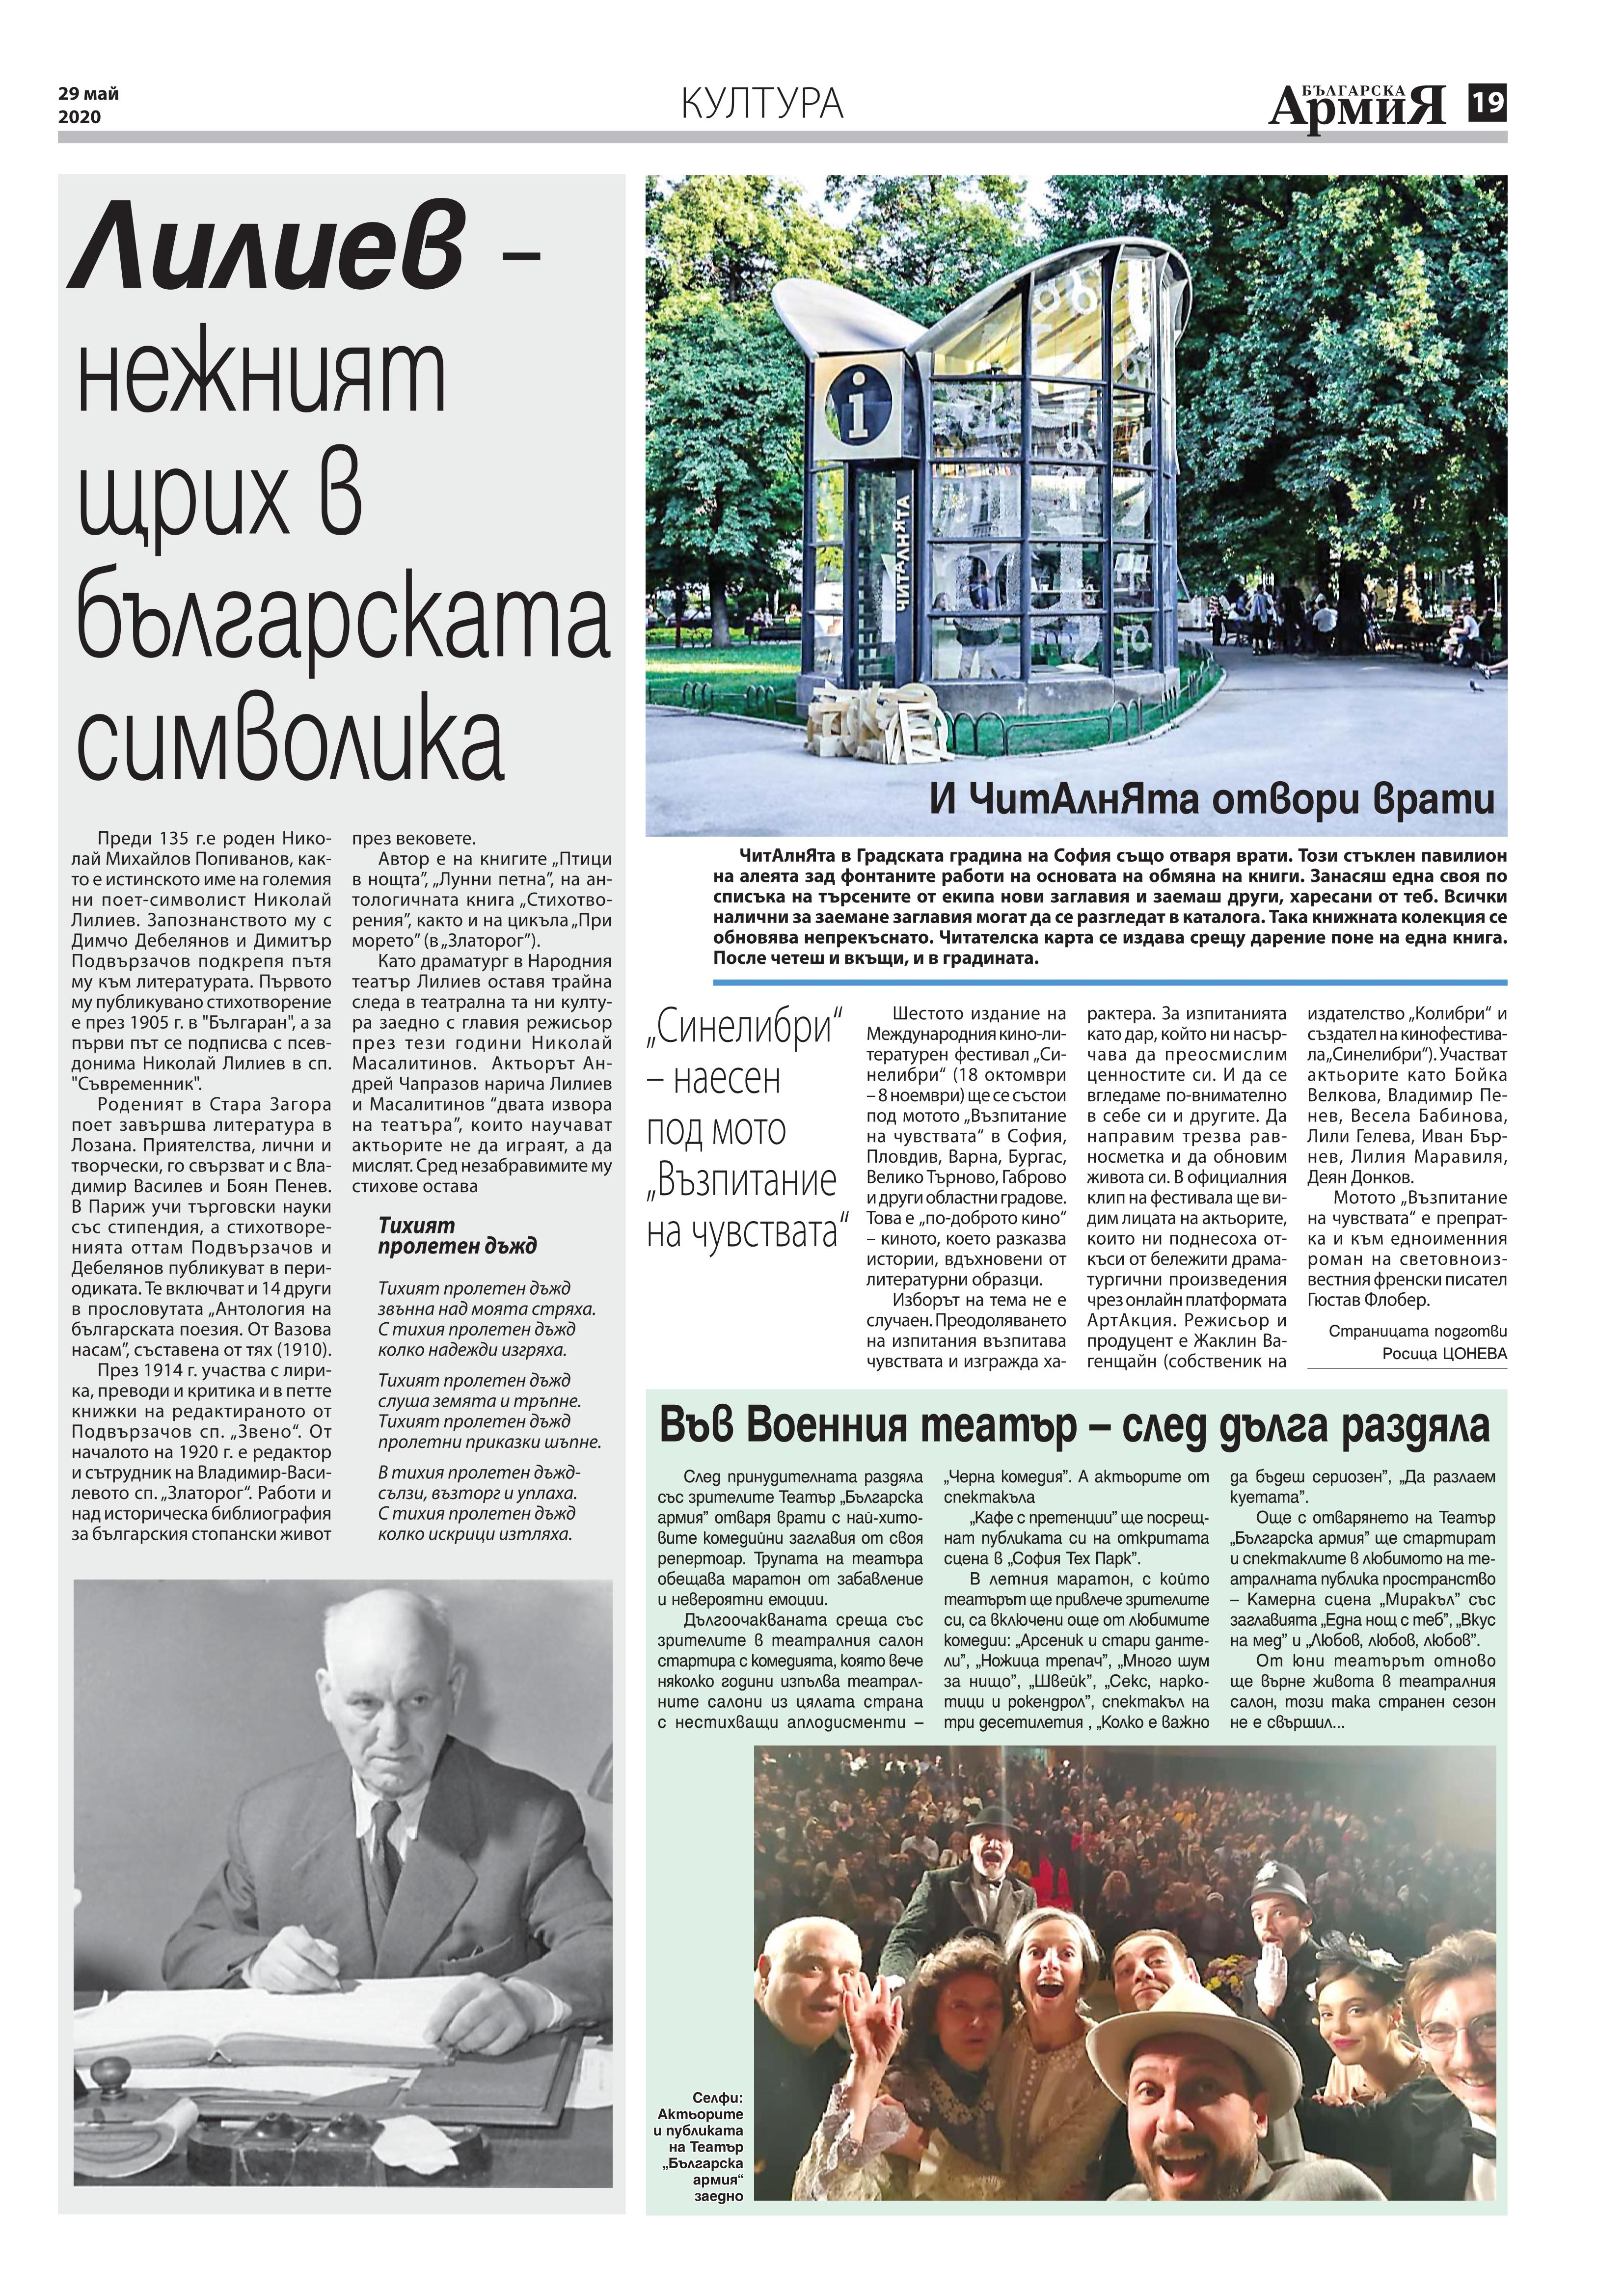 https://www.armymedia.bg/wp-content/uploads/2015/06/19.page1_-142.jpg